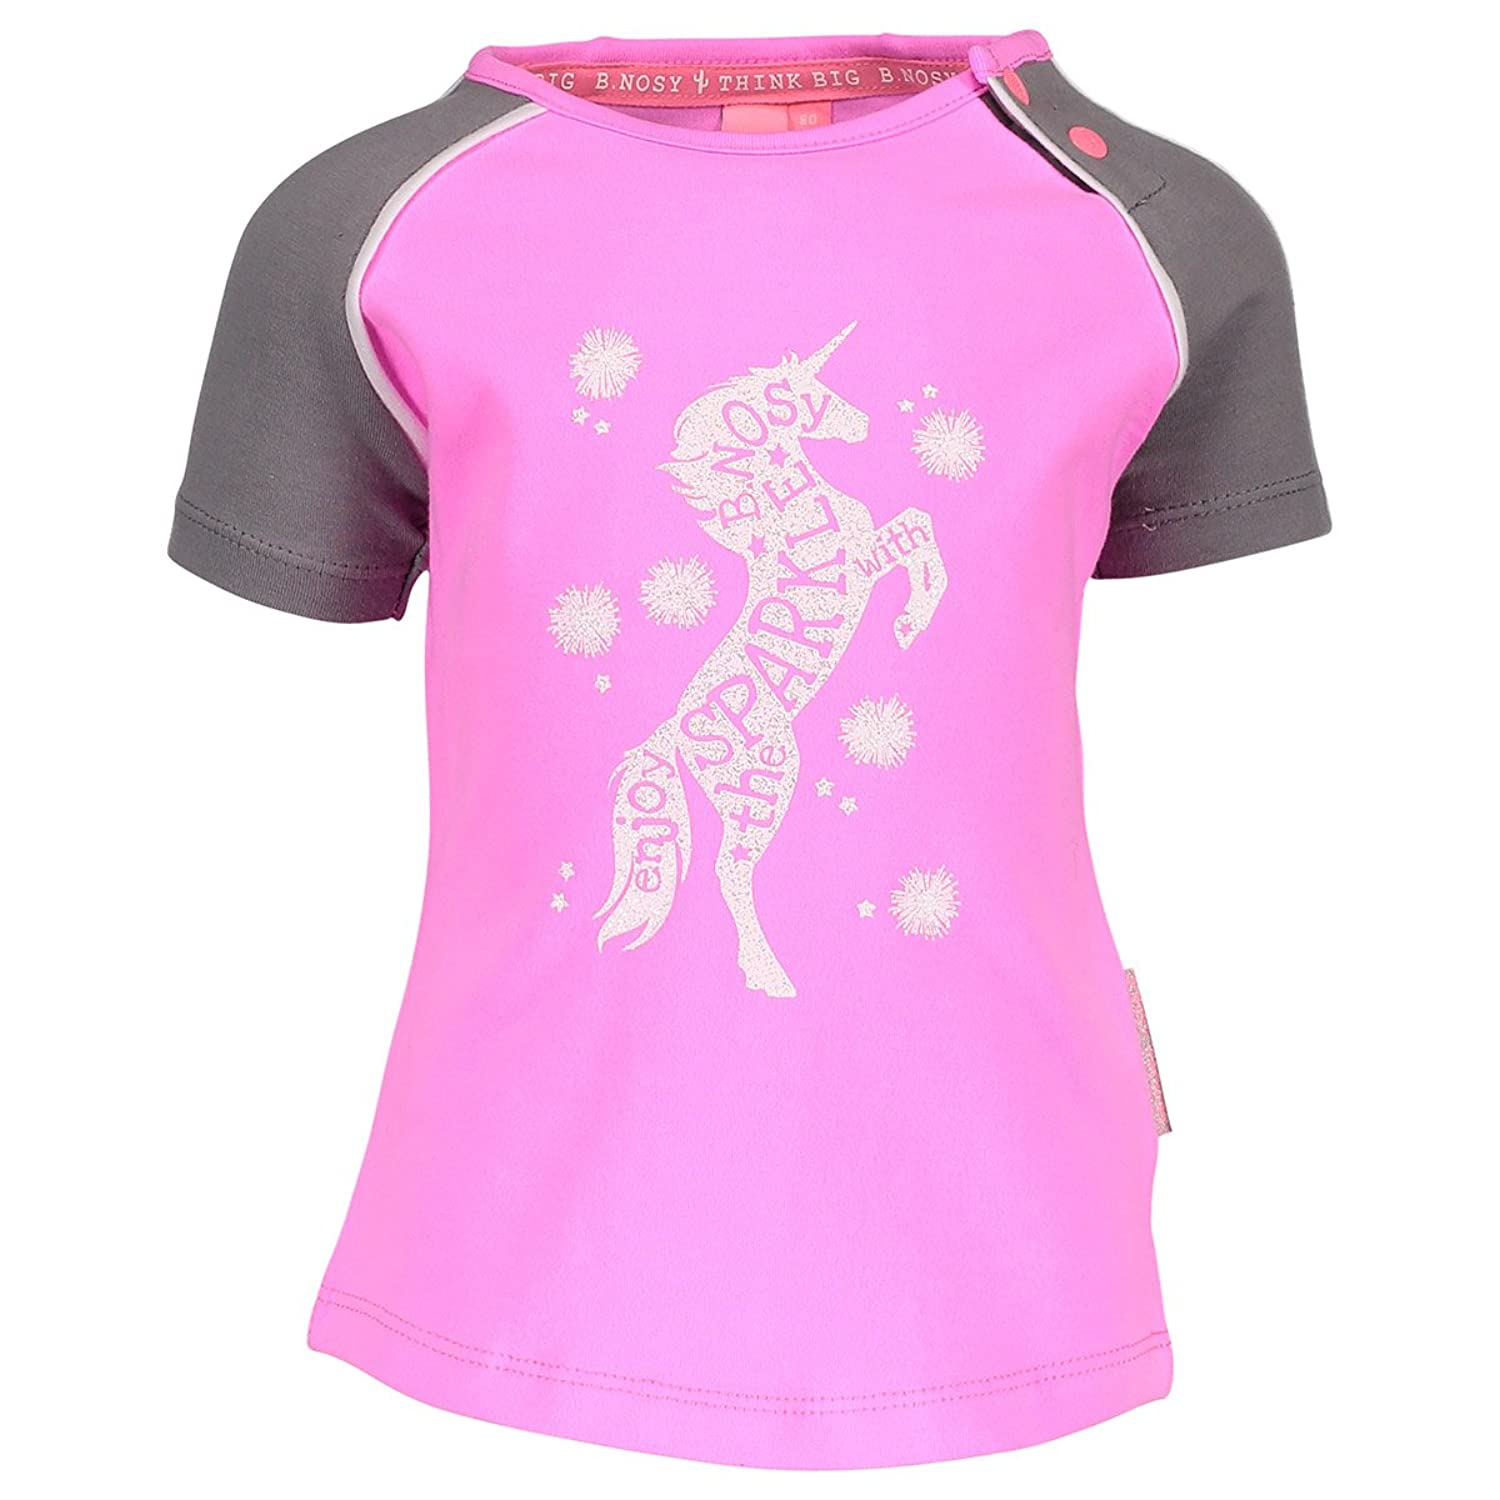 B.Nosy Fille t-Shirts-Manches-Courtes - 80